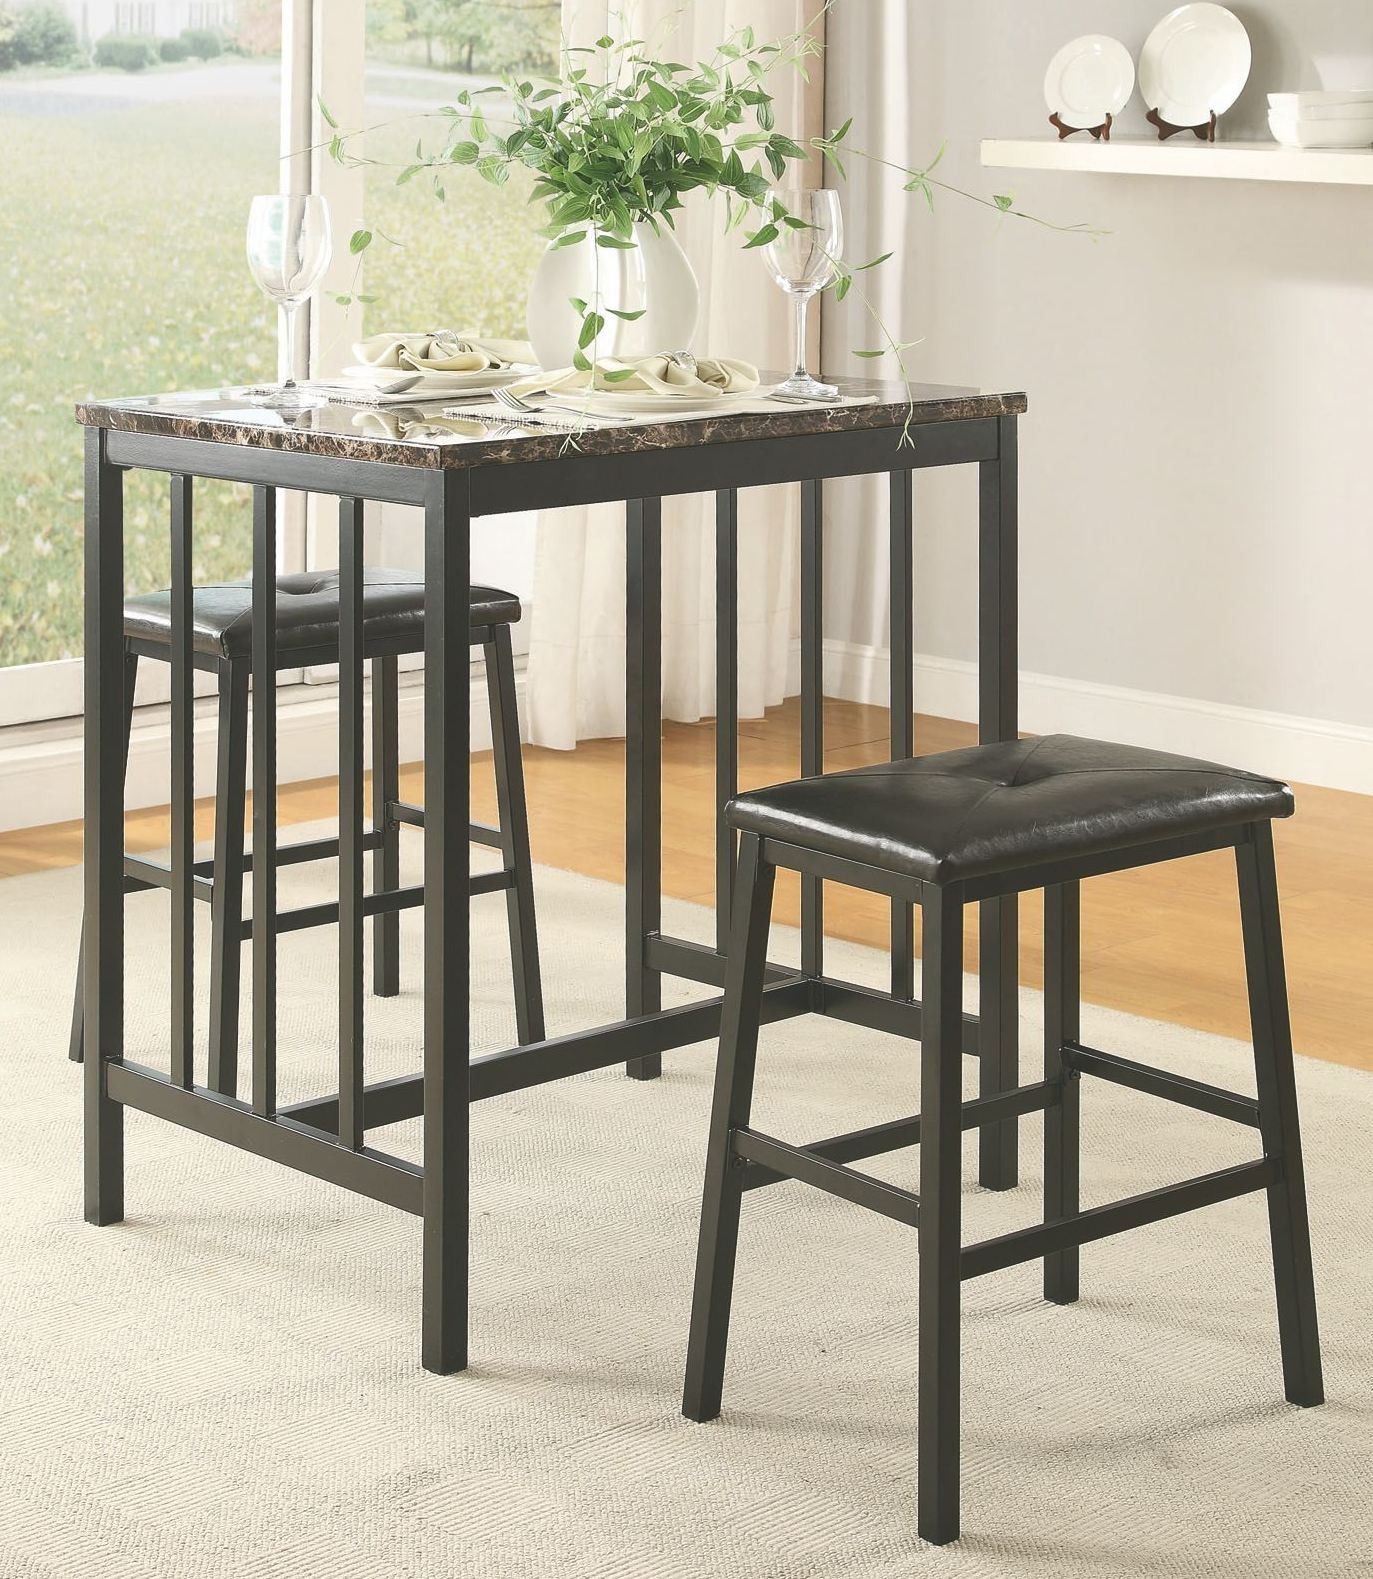 Edgar 3Pc Pack Faux Marble Counter Height Set from Homelegance